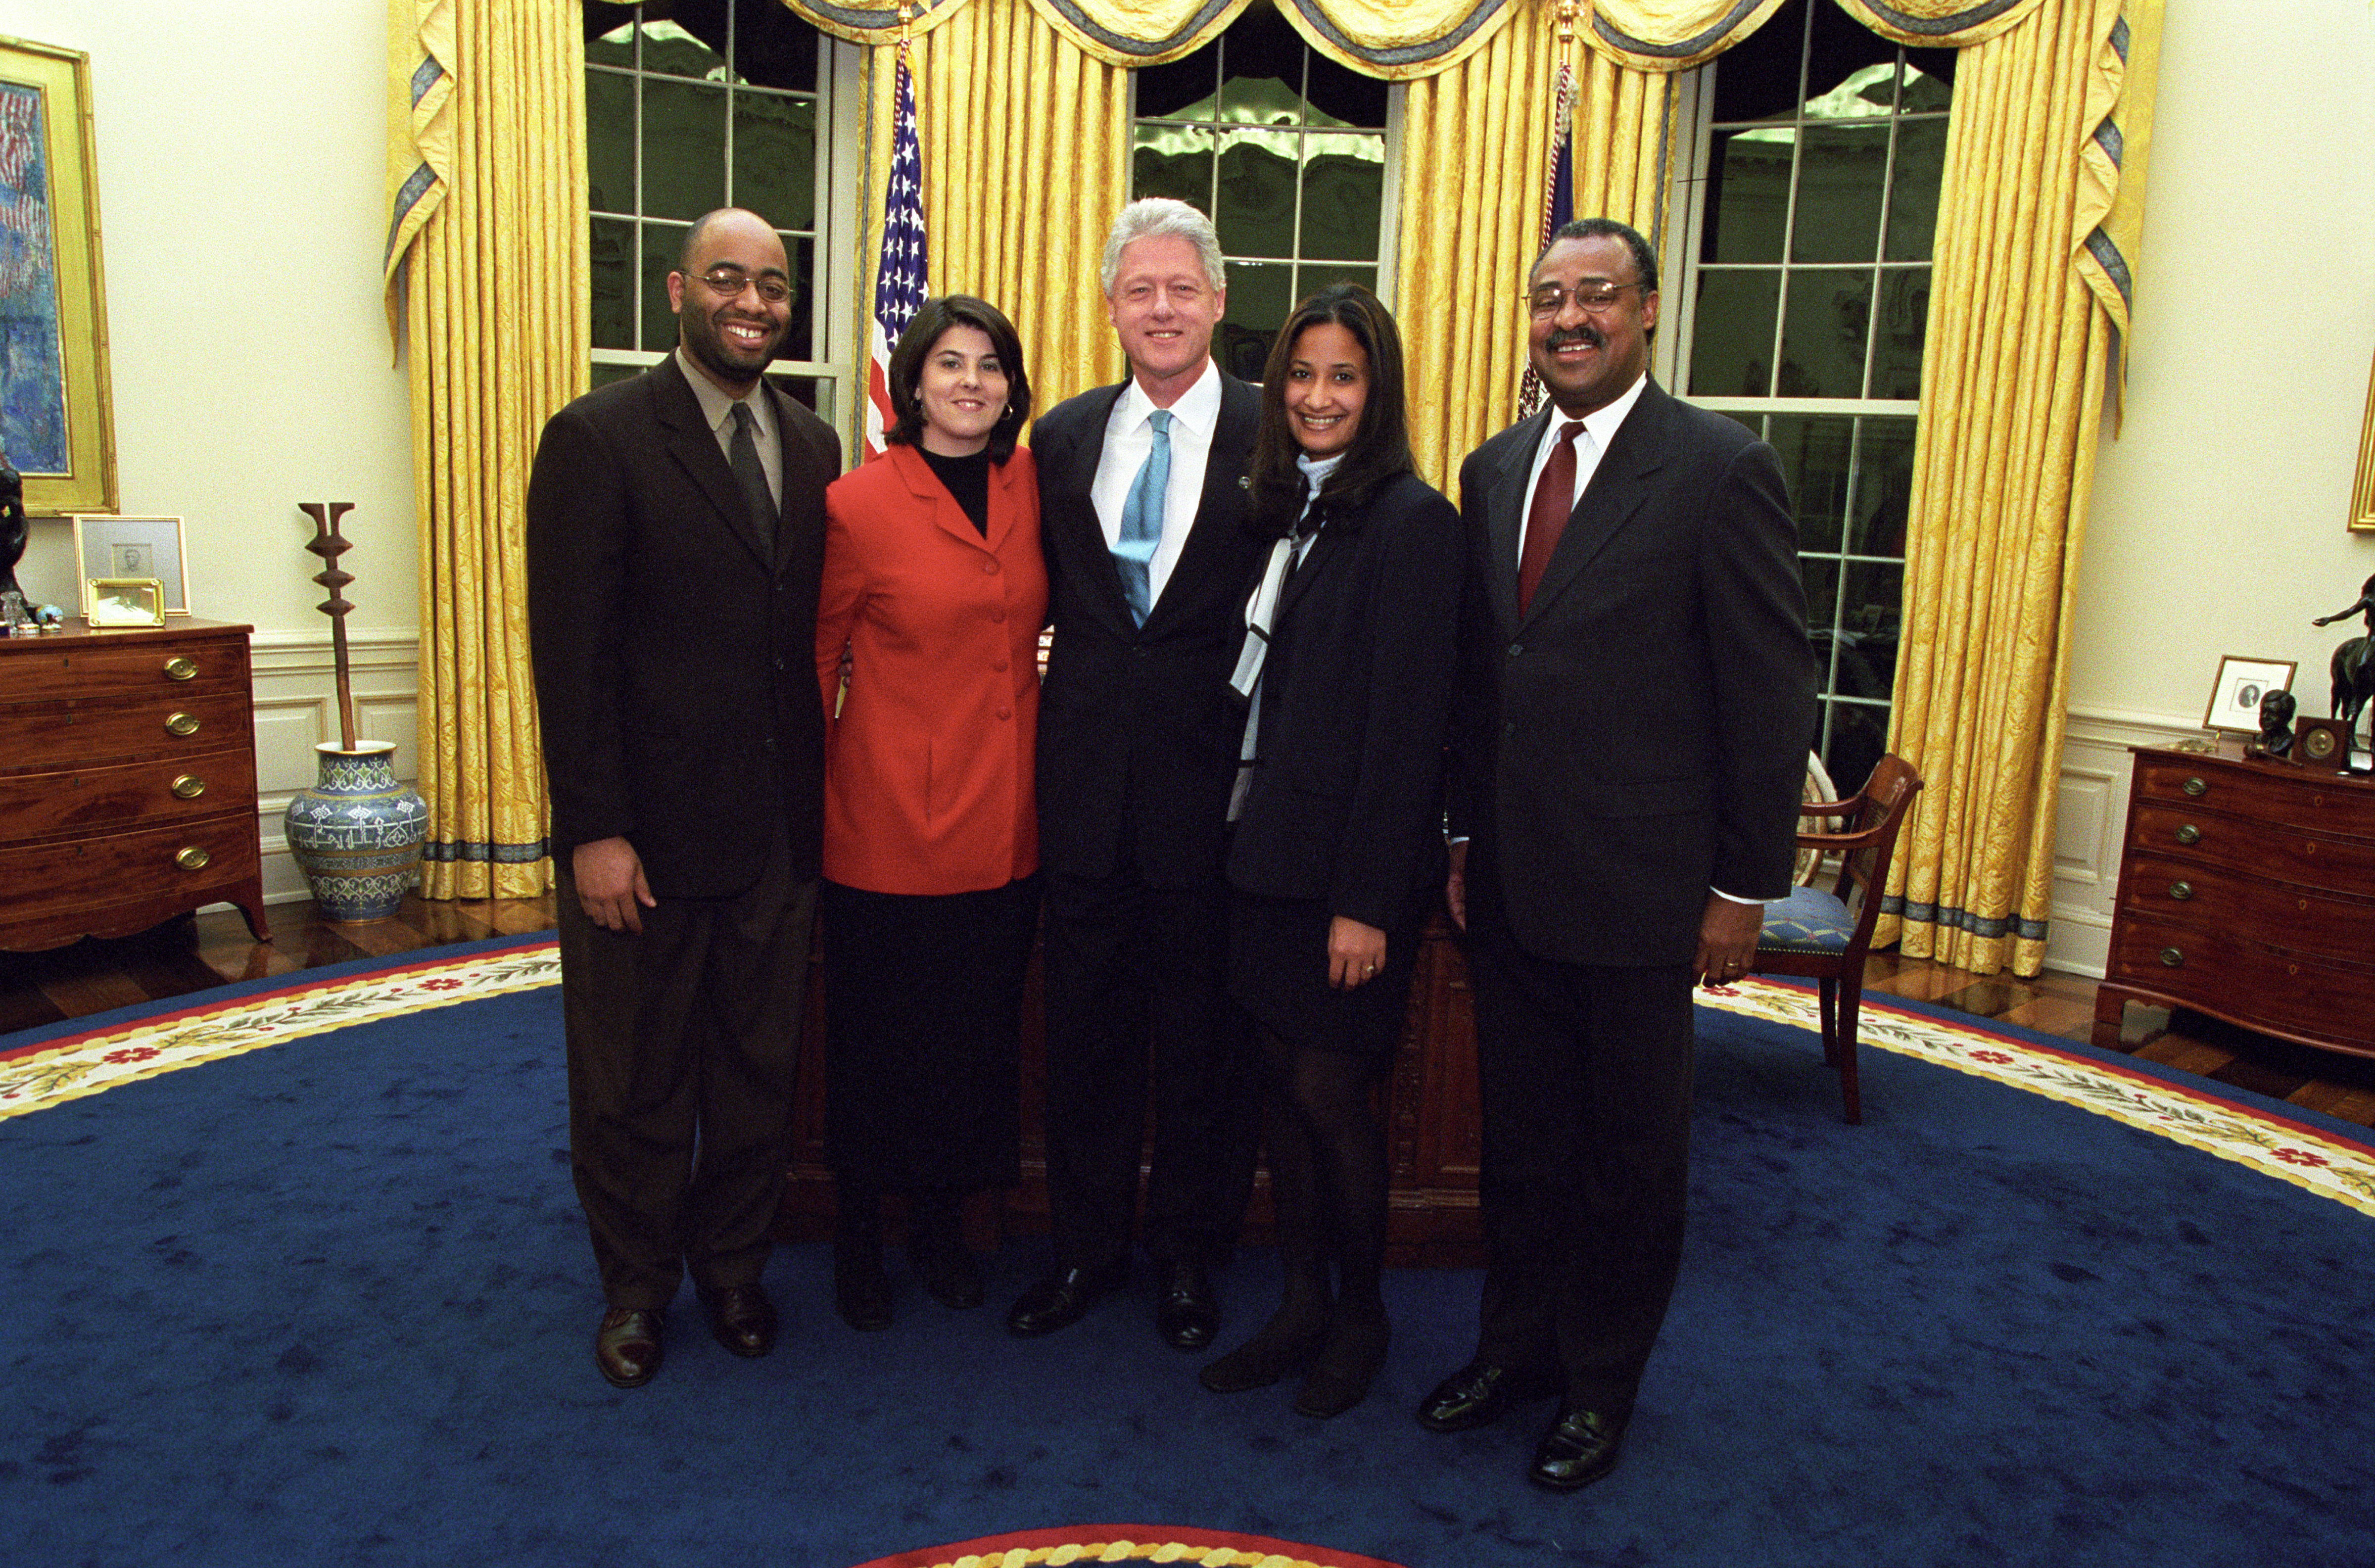 President Clinton joins the staff of the One America Office for a group photo in the Oval Office